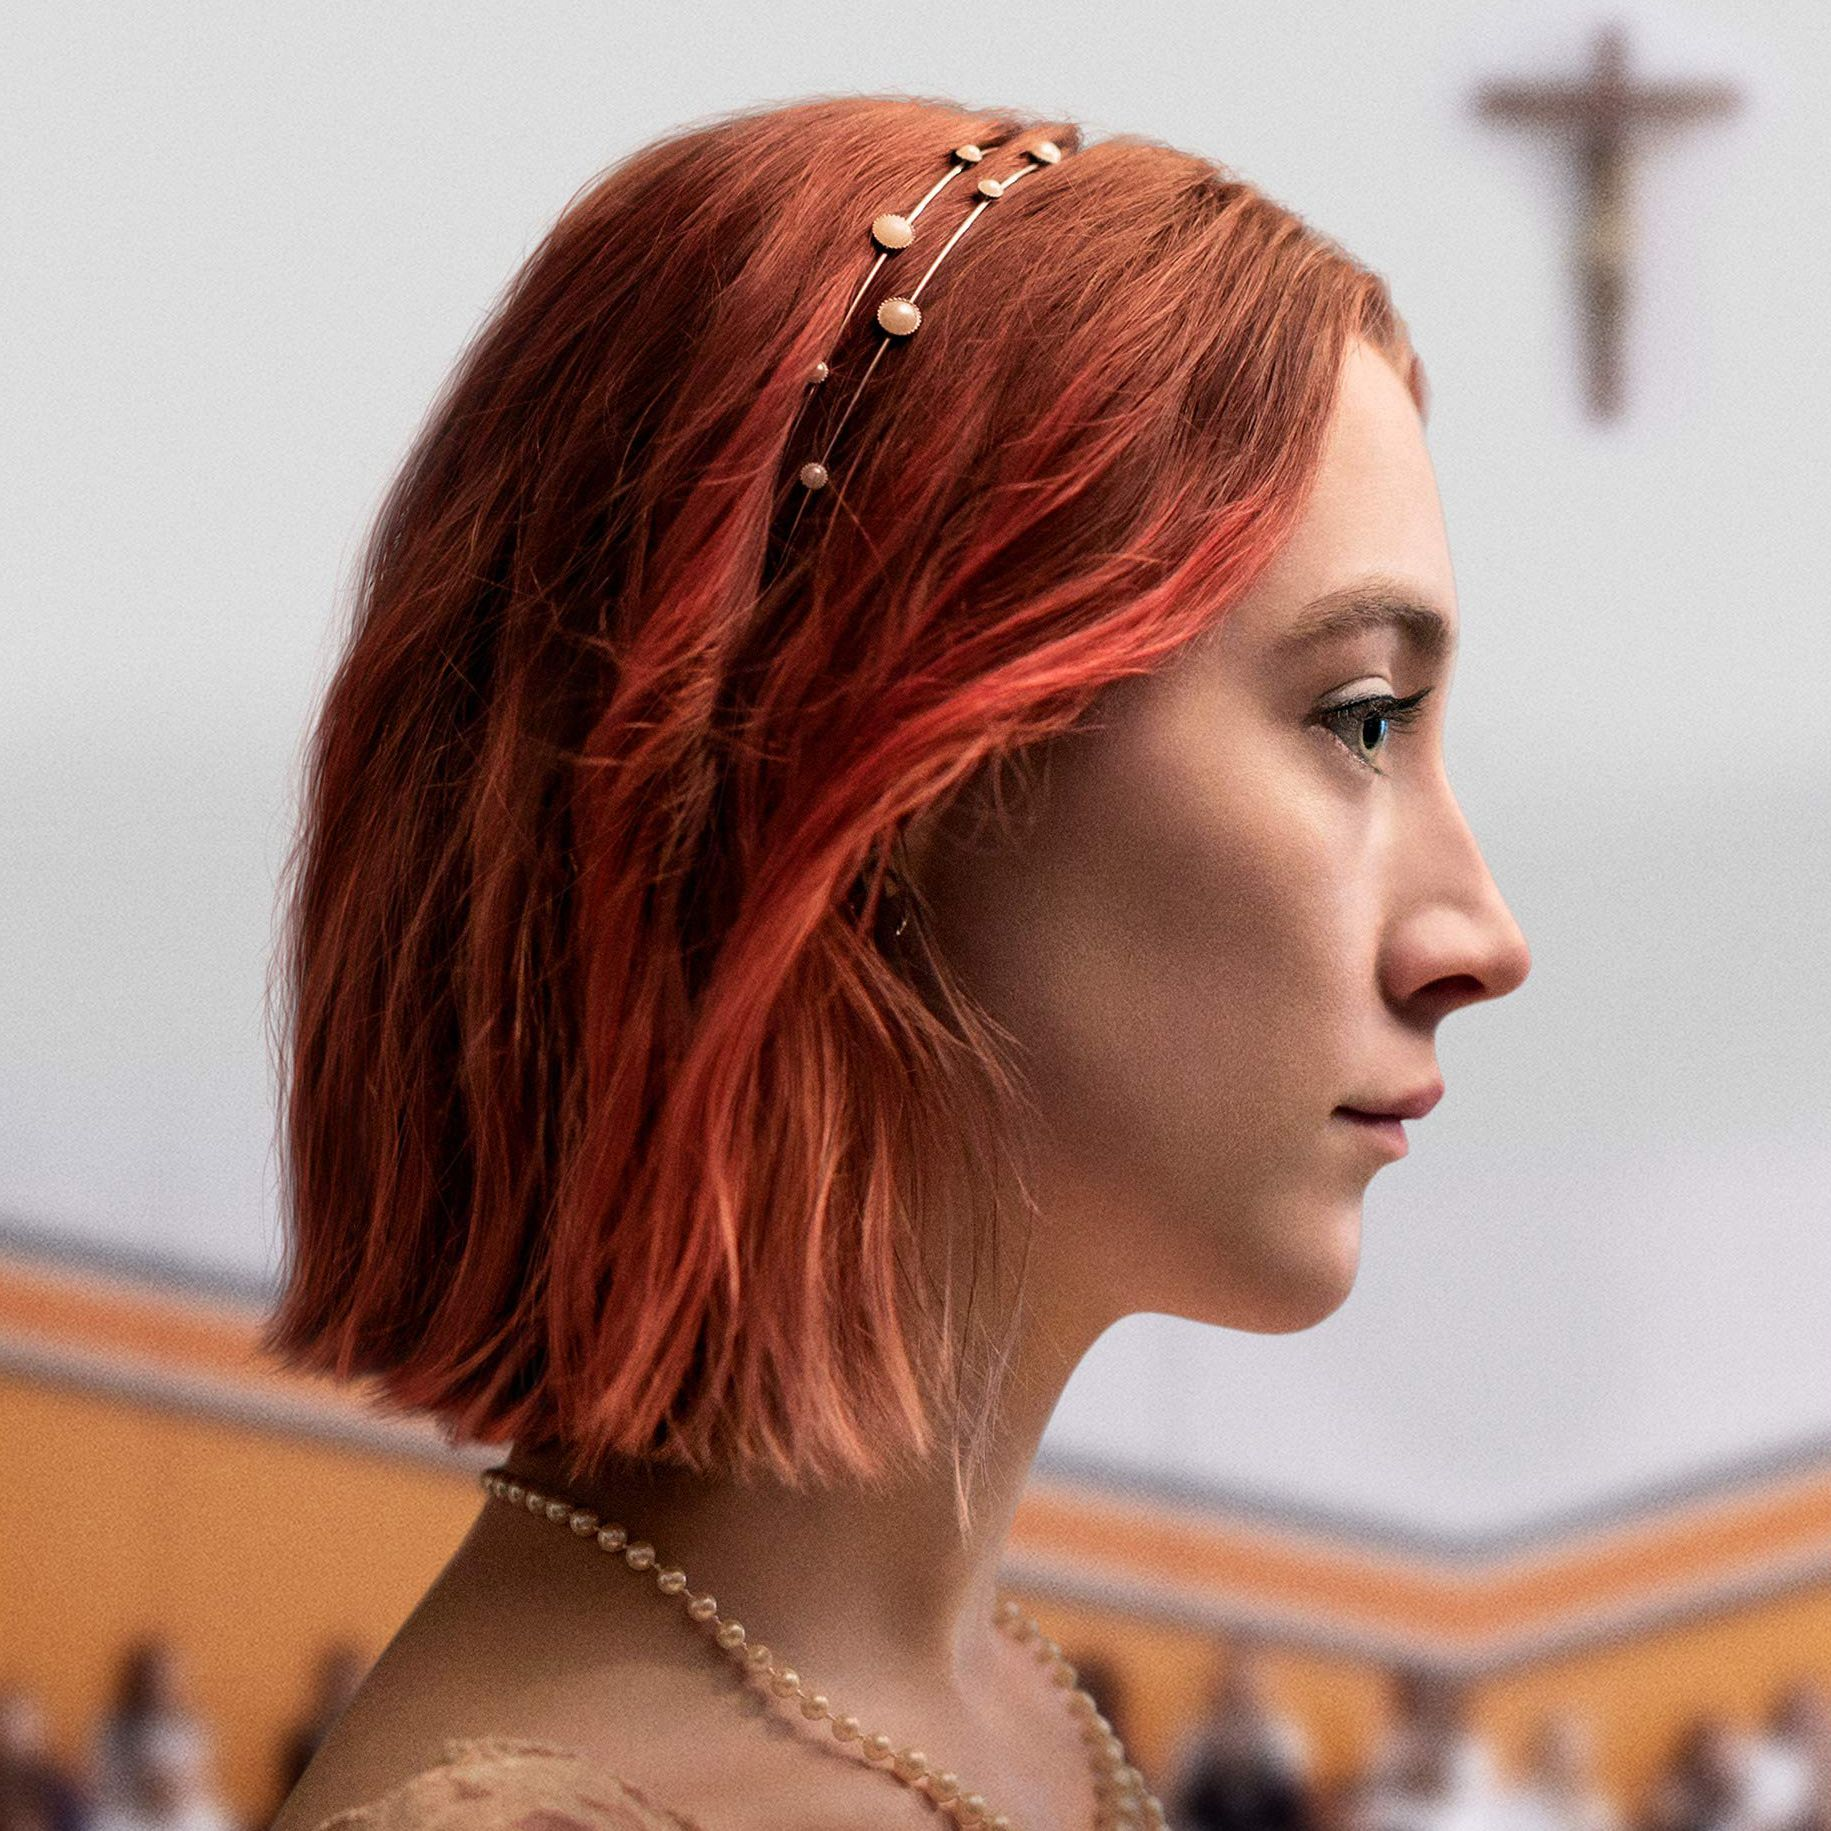 Best Coming of Age Movies - Lady Bird